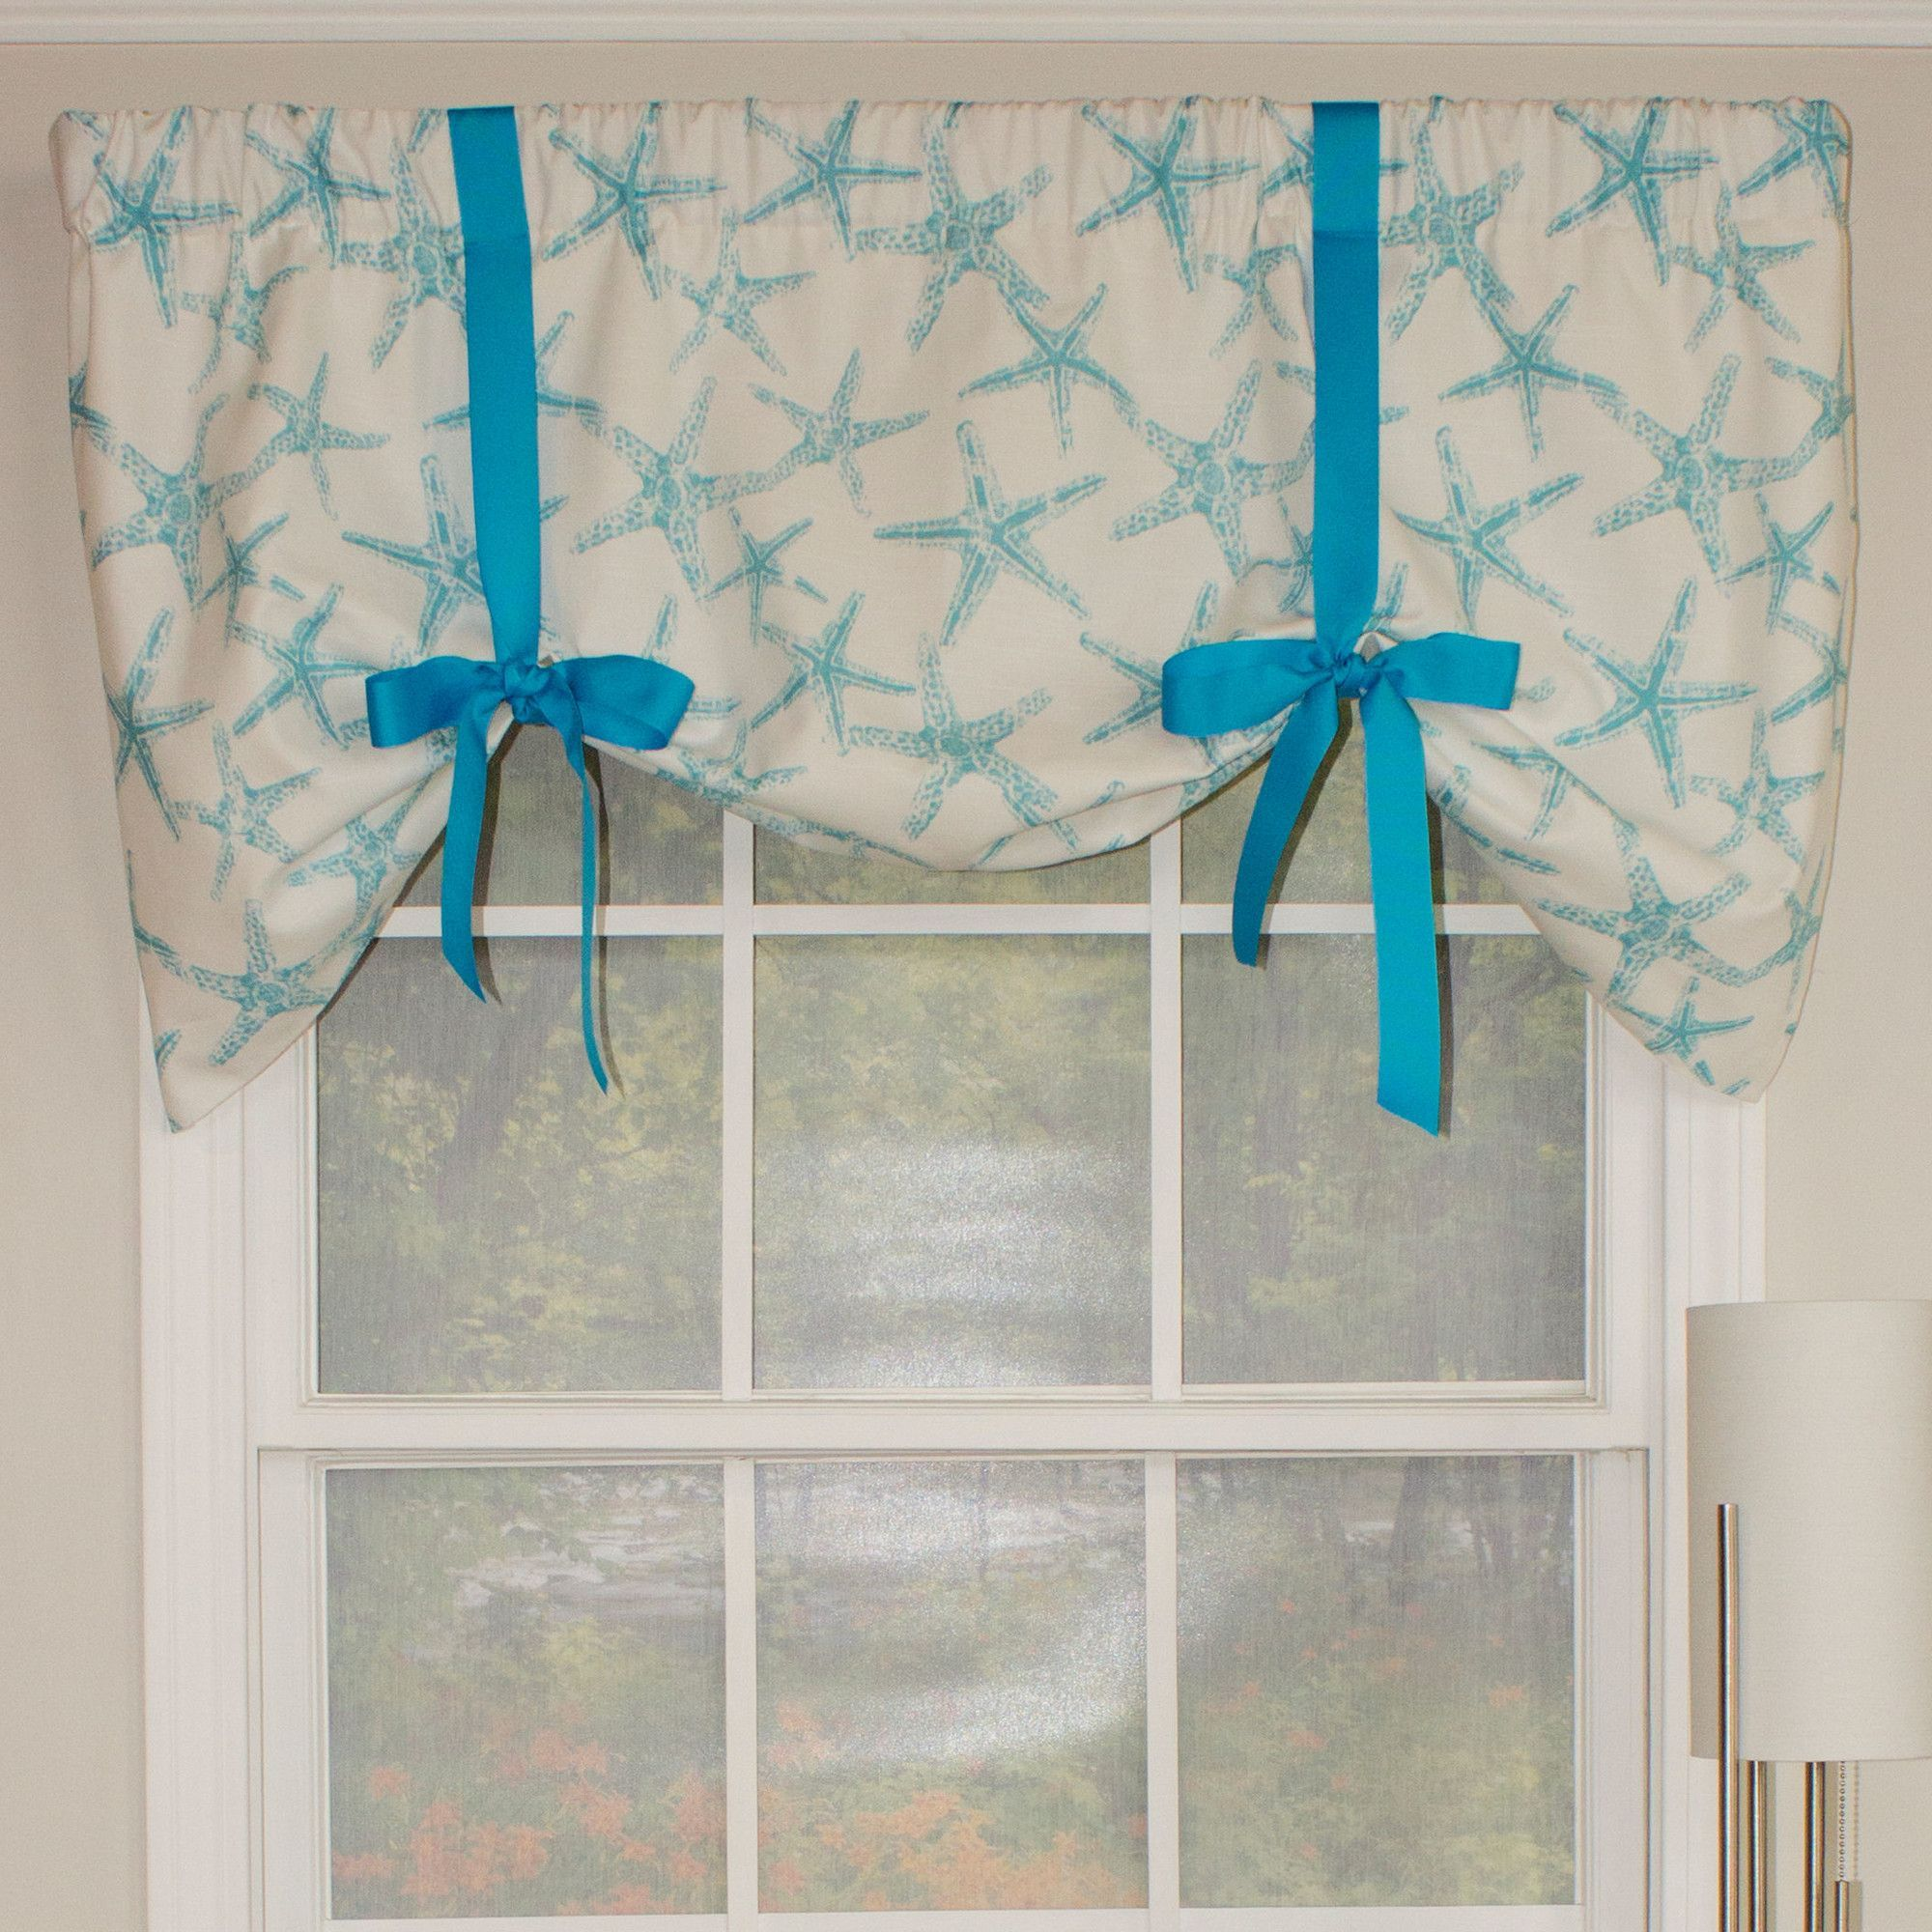 Beach Star Tie Up 50 Curtain Valance Curtains Valance Curtains Valance